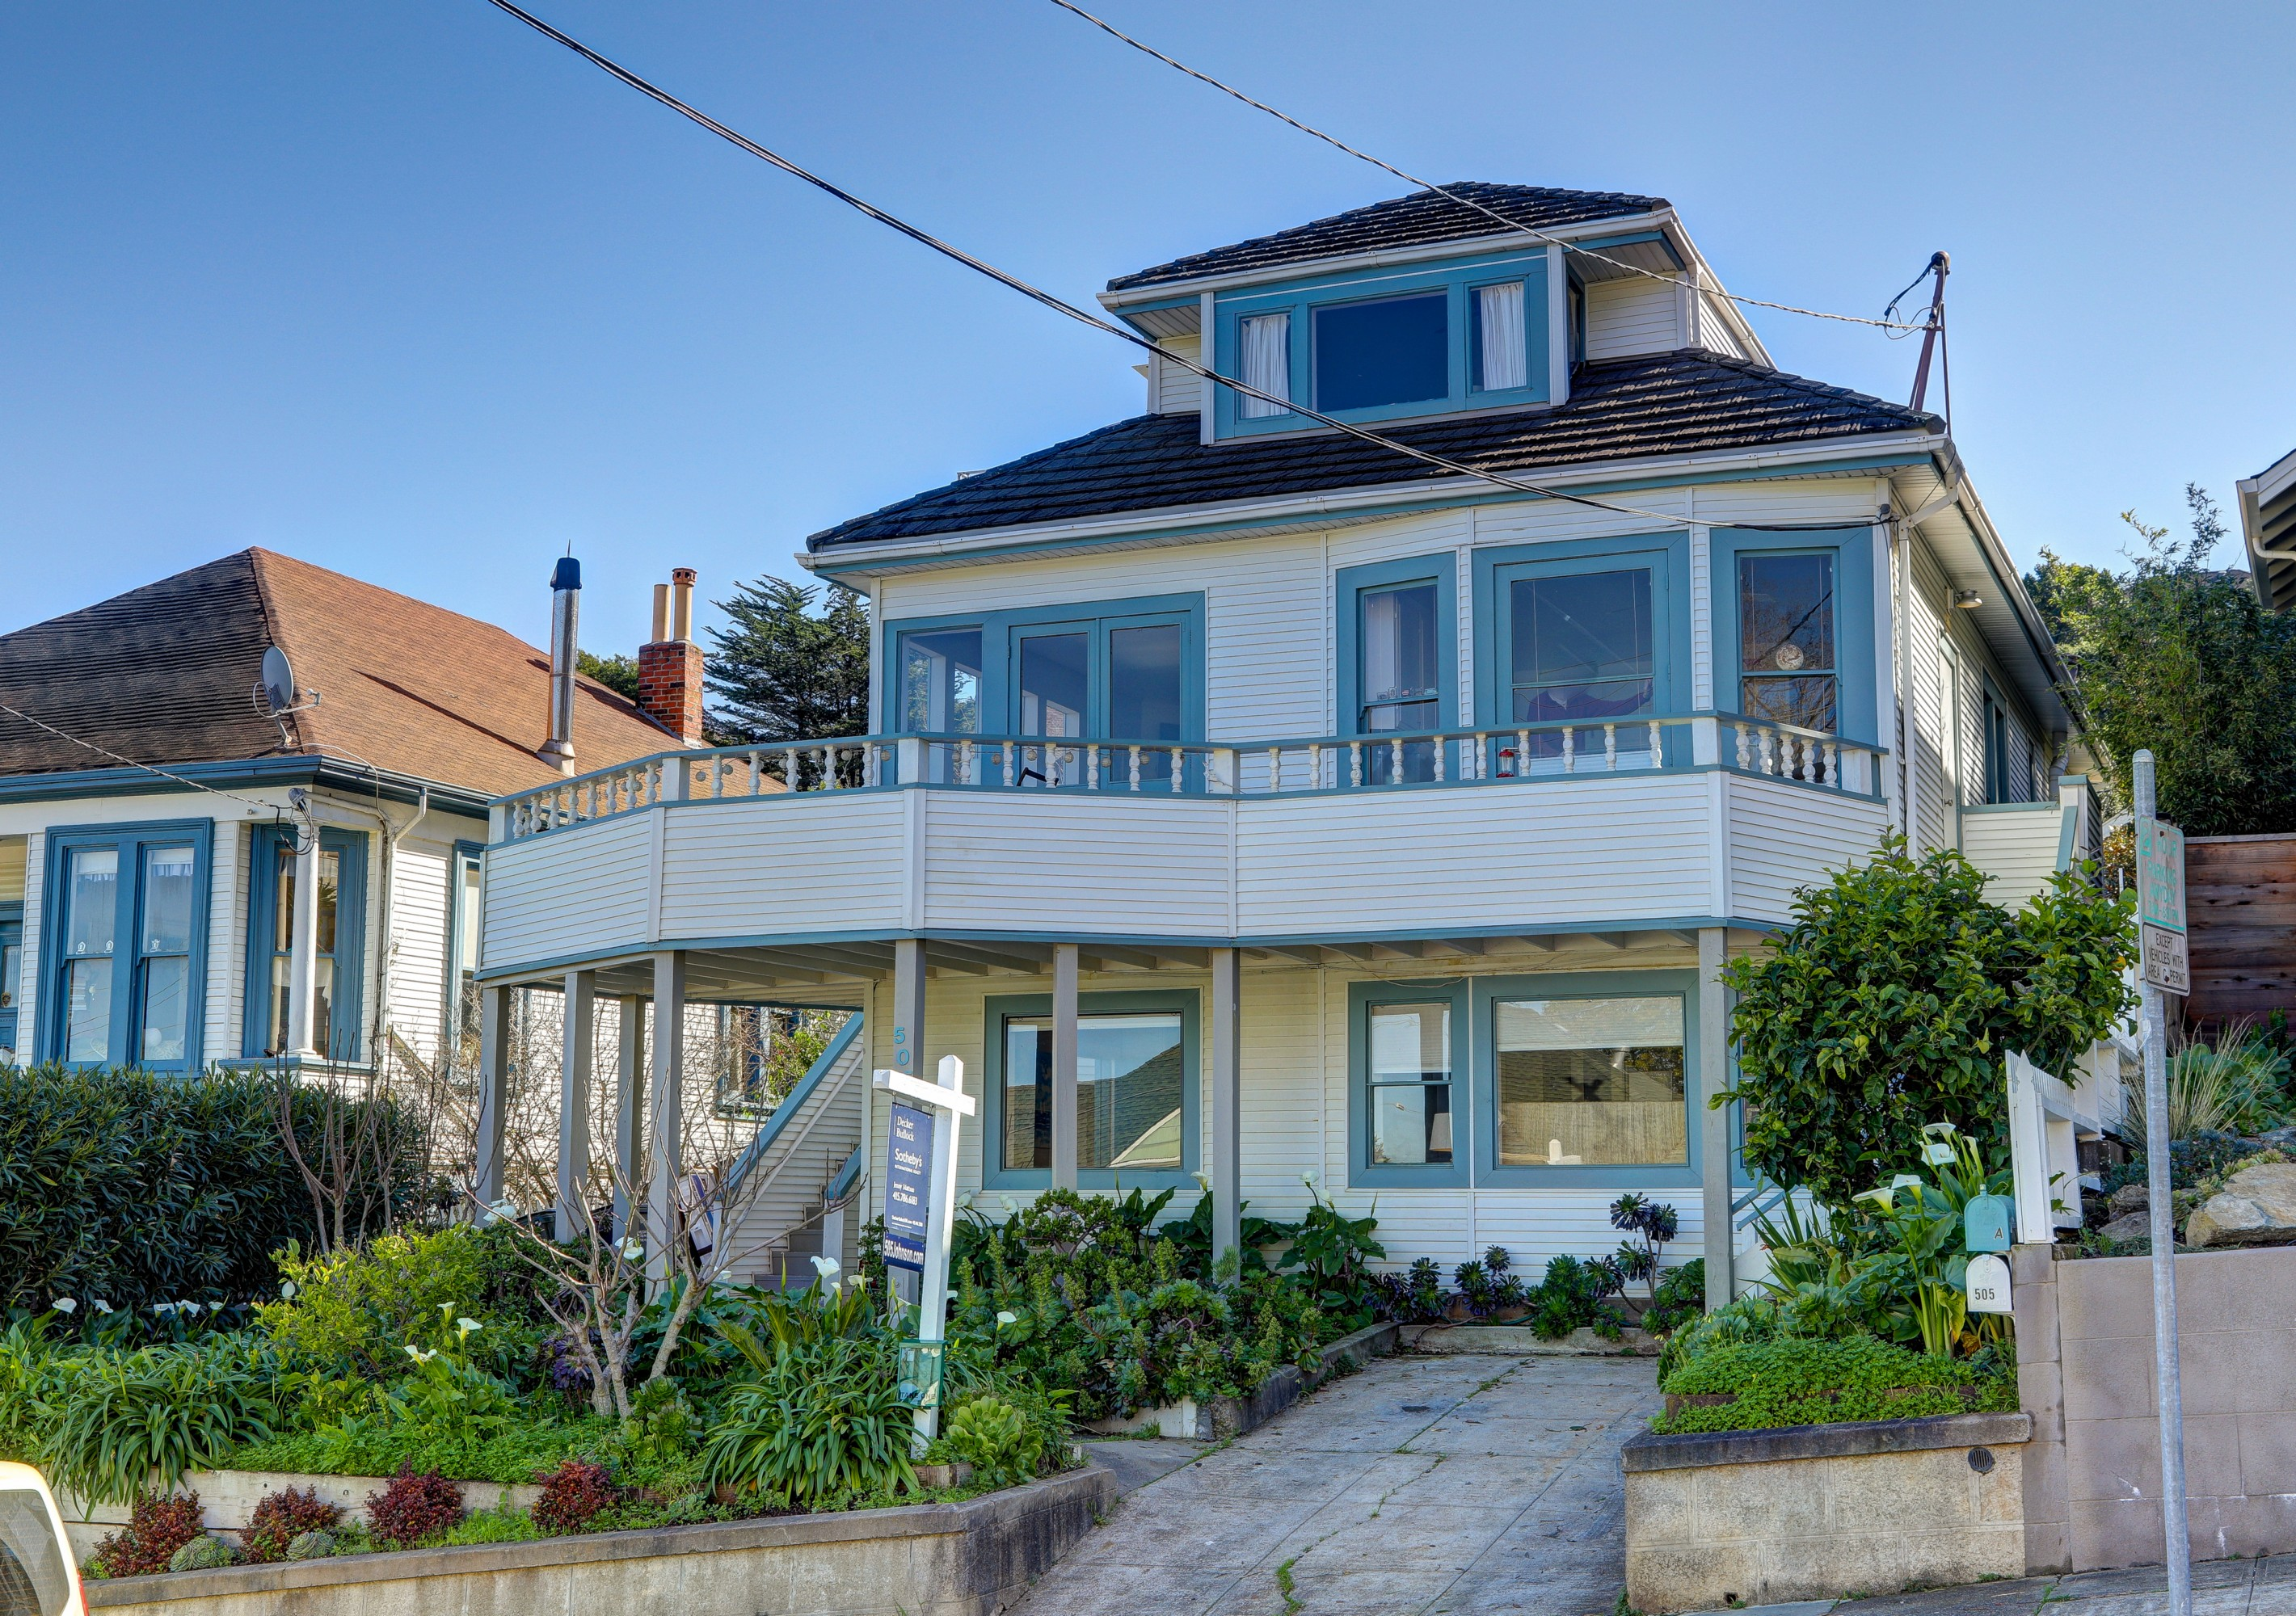 Duplex for Sale at Stunning Sausalito Duplex 505 Johnson Street Sausalito, California 94965 United States